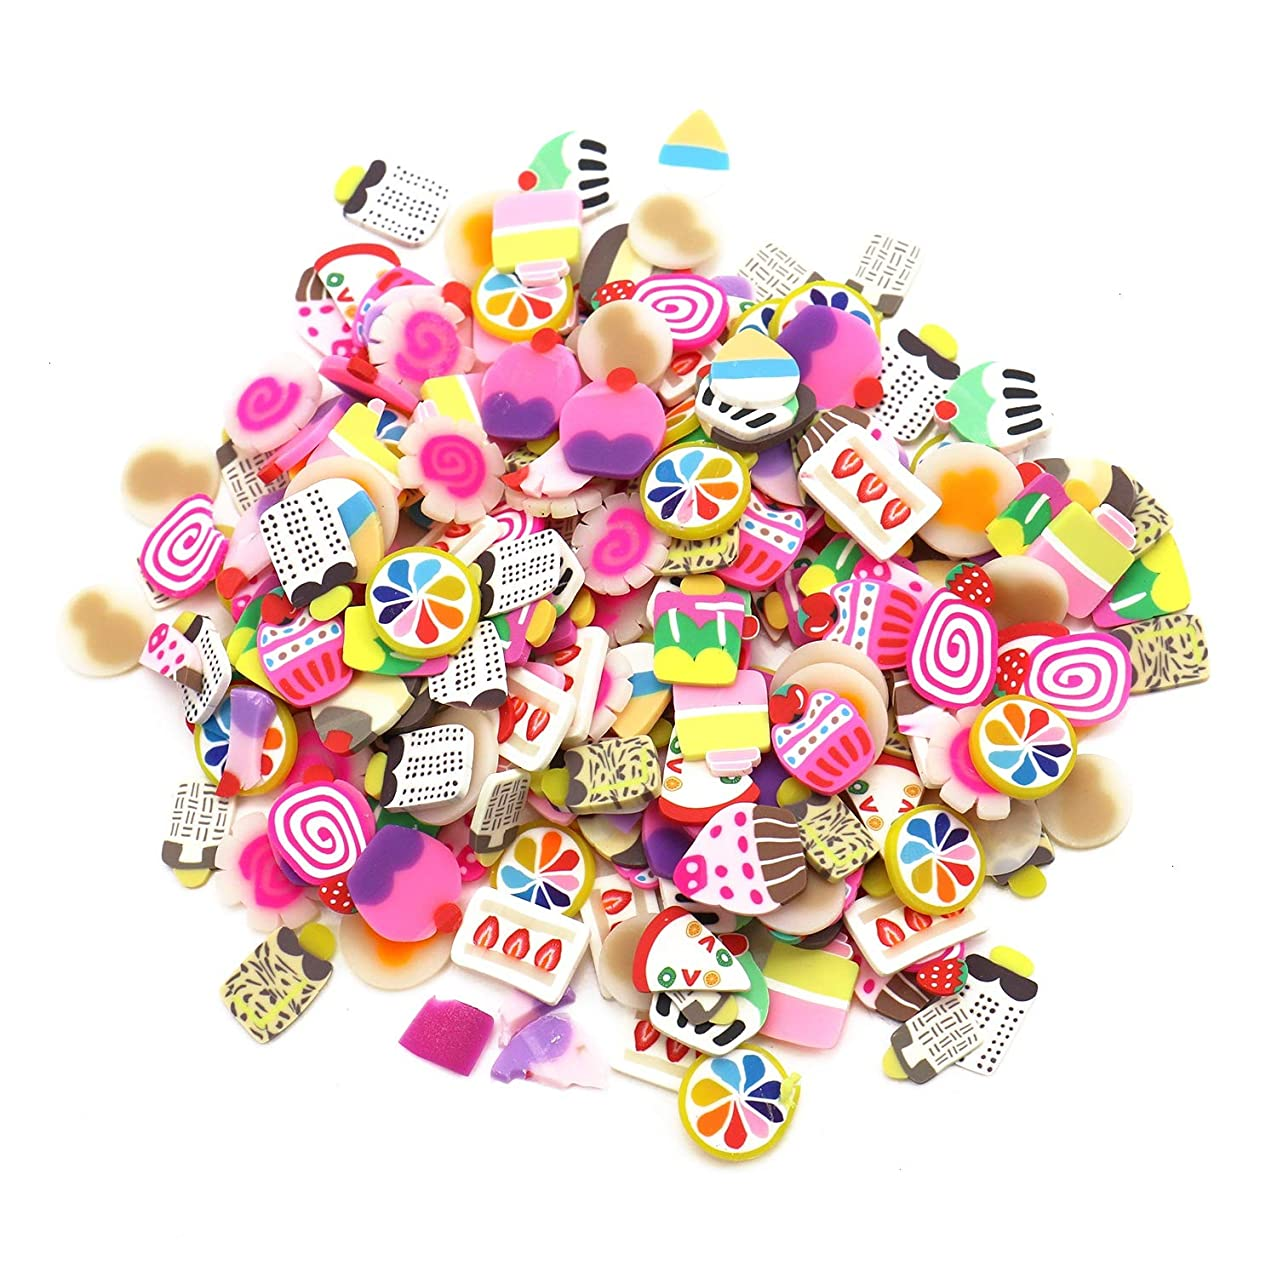 Monrocco 400 Pcs Assorted Fruits Cake Sweets Flatback Resin Cabochons Slime Charms Cute Set for Craft Making